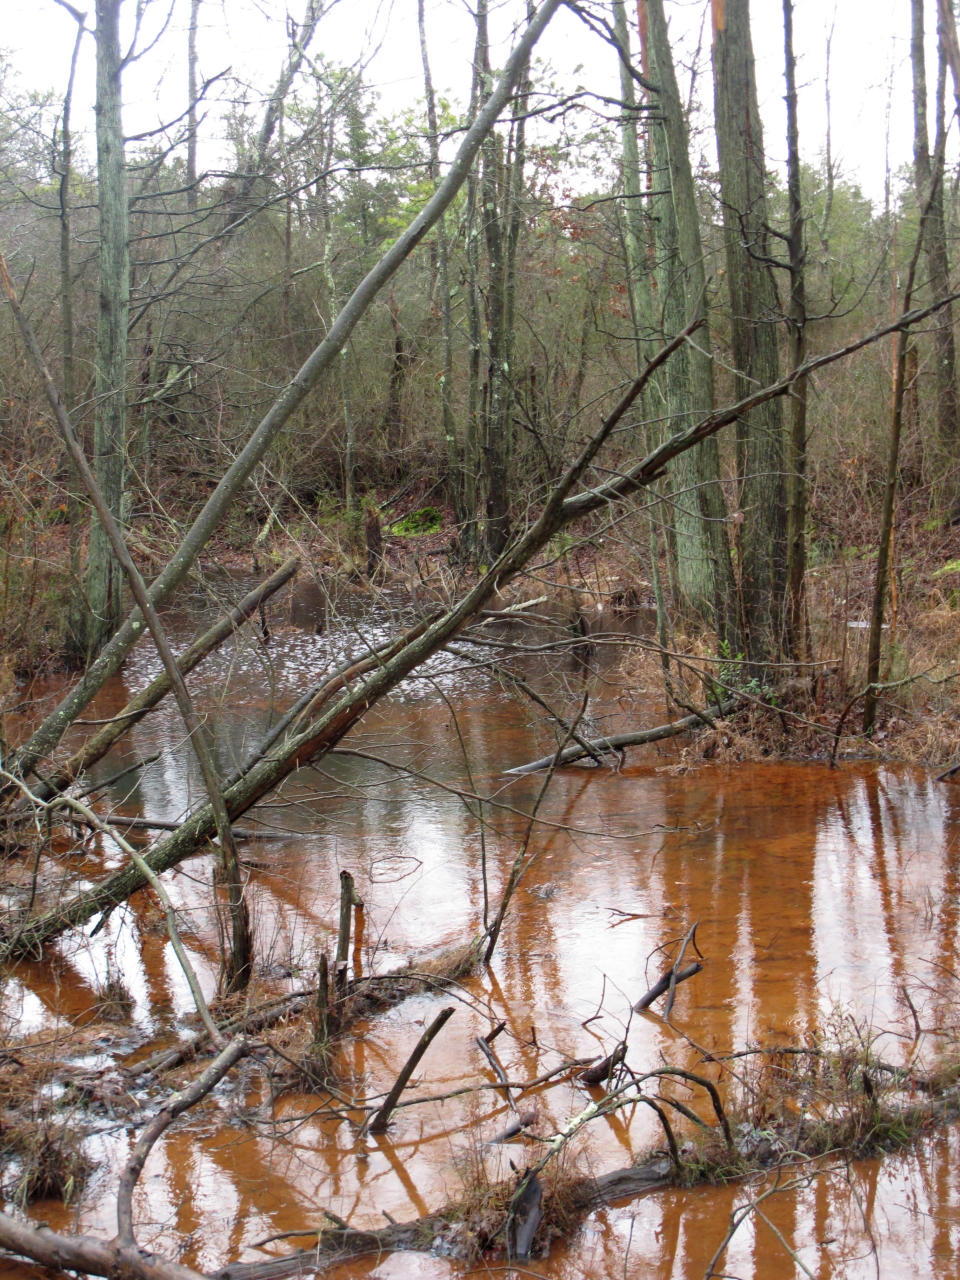 """FILE - This Jan. 6, 2014 file photo shows a stream flowing through the New Jersey Pinelands region in Lakehurst, N.J. On Tuesday, Nov. 10, 2020, New Jersey officials sued three companies, demanding that they clean up chemical contamination of the environment, including waterways, in West Deptford and Edgewater, in an effort to force chemical companies to pay for decades of contamination of waterways by so-called """"forever chemicals"""" used to stain-proof clothing and produce non-stick cookware that have become ubiquitous in everyday life. (AP Photo/Wayne Parry, File)"""